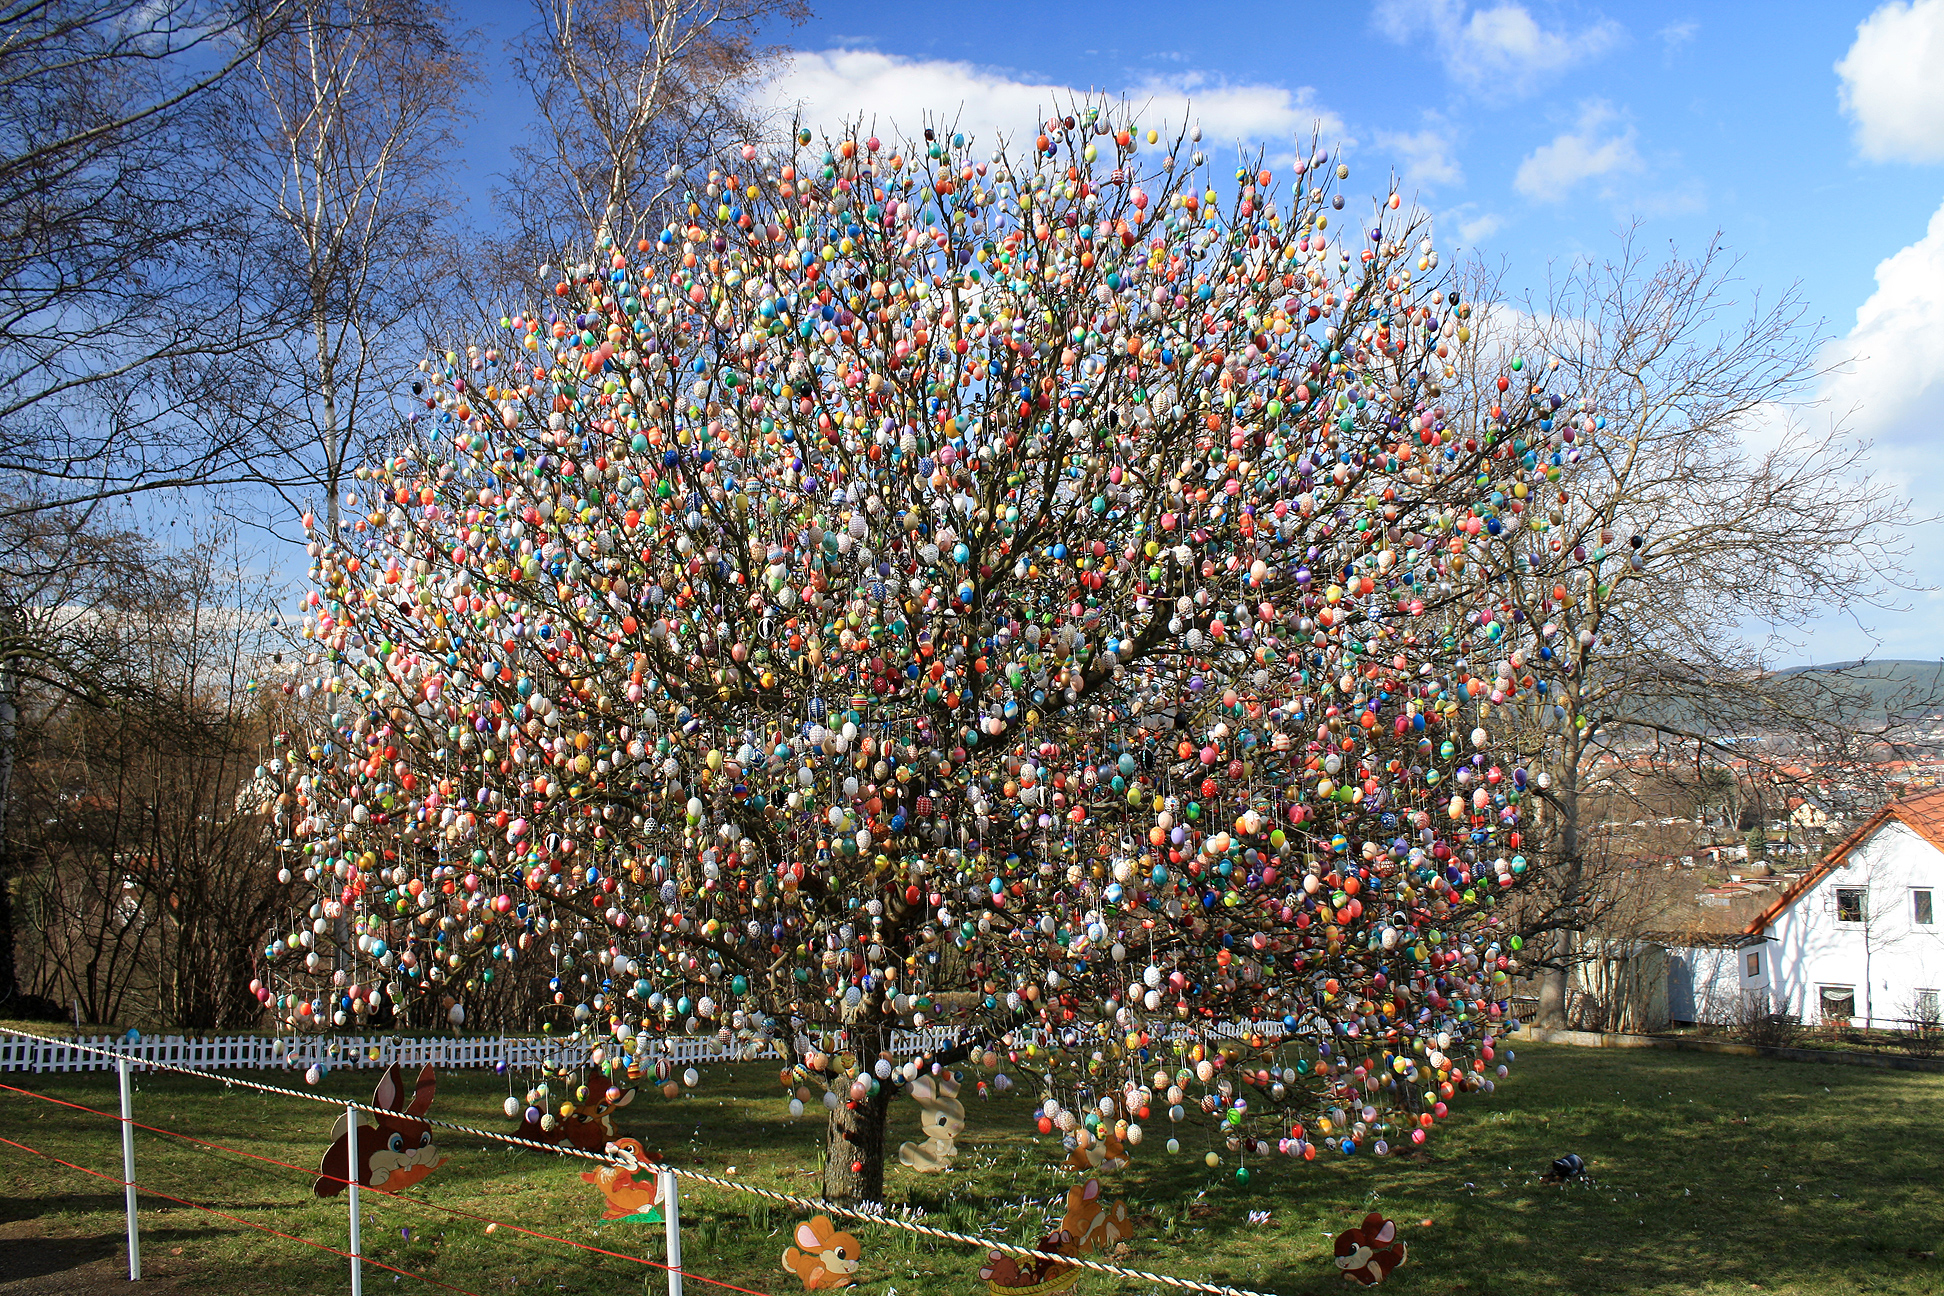 The most famous Ostereierbaum in Germany - Saalfelder Ostereierbaum